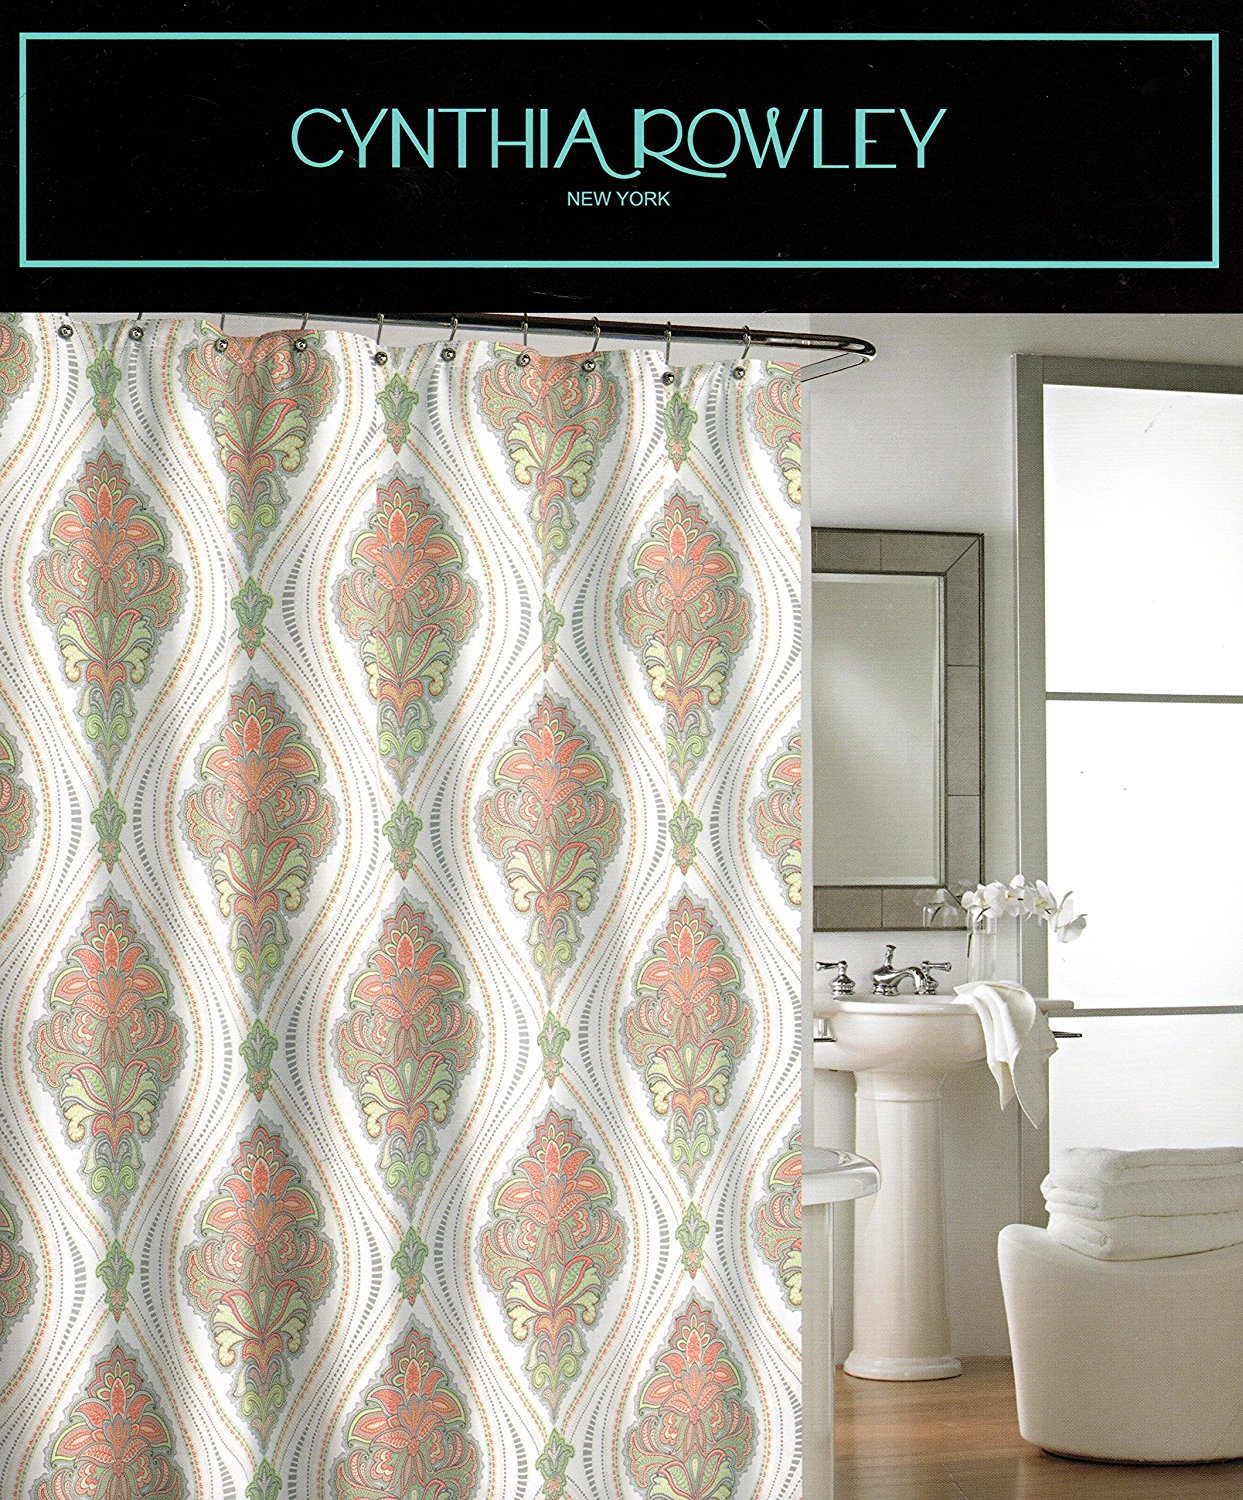 Buy Cynthia Rowley Ornate Medallion Fabric Shower Curtain 72 Inch By 72 Inch Damask Floral Scrolls Shower Curtain Gray Orange Green Beige Grey White In Cheap Price On M Alibaba Com